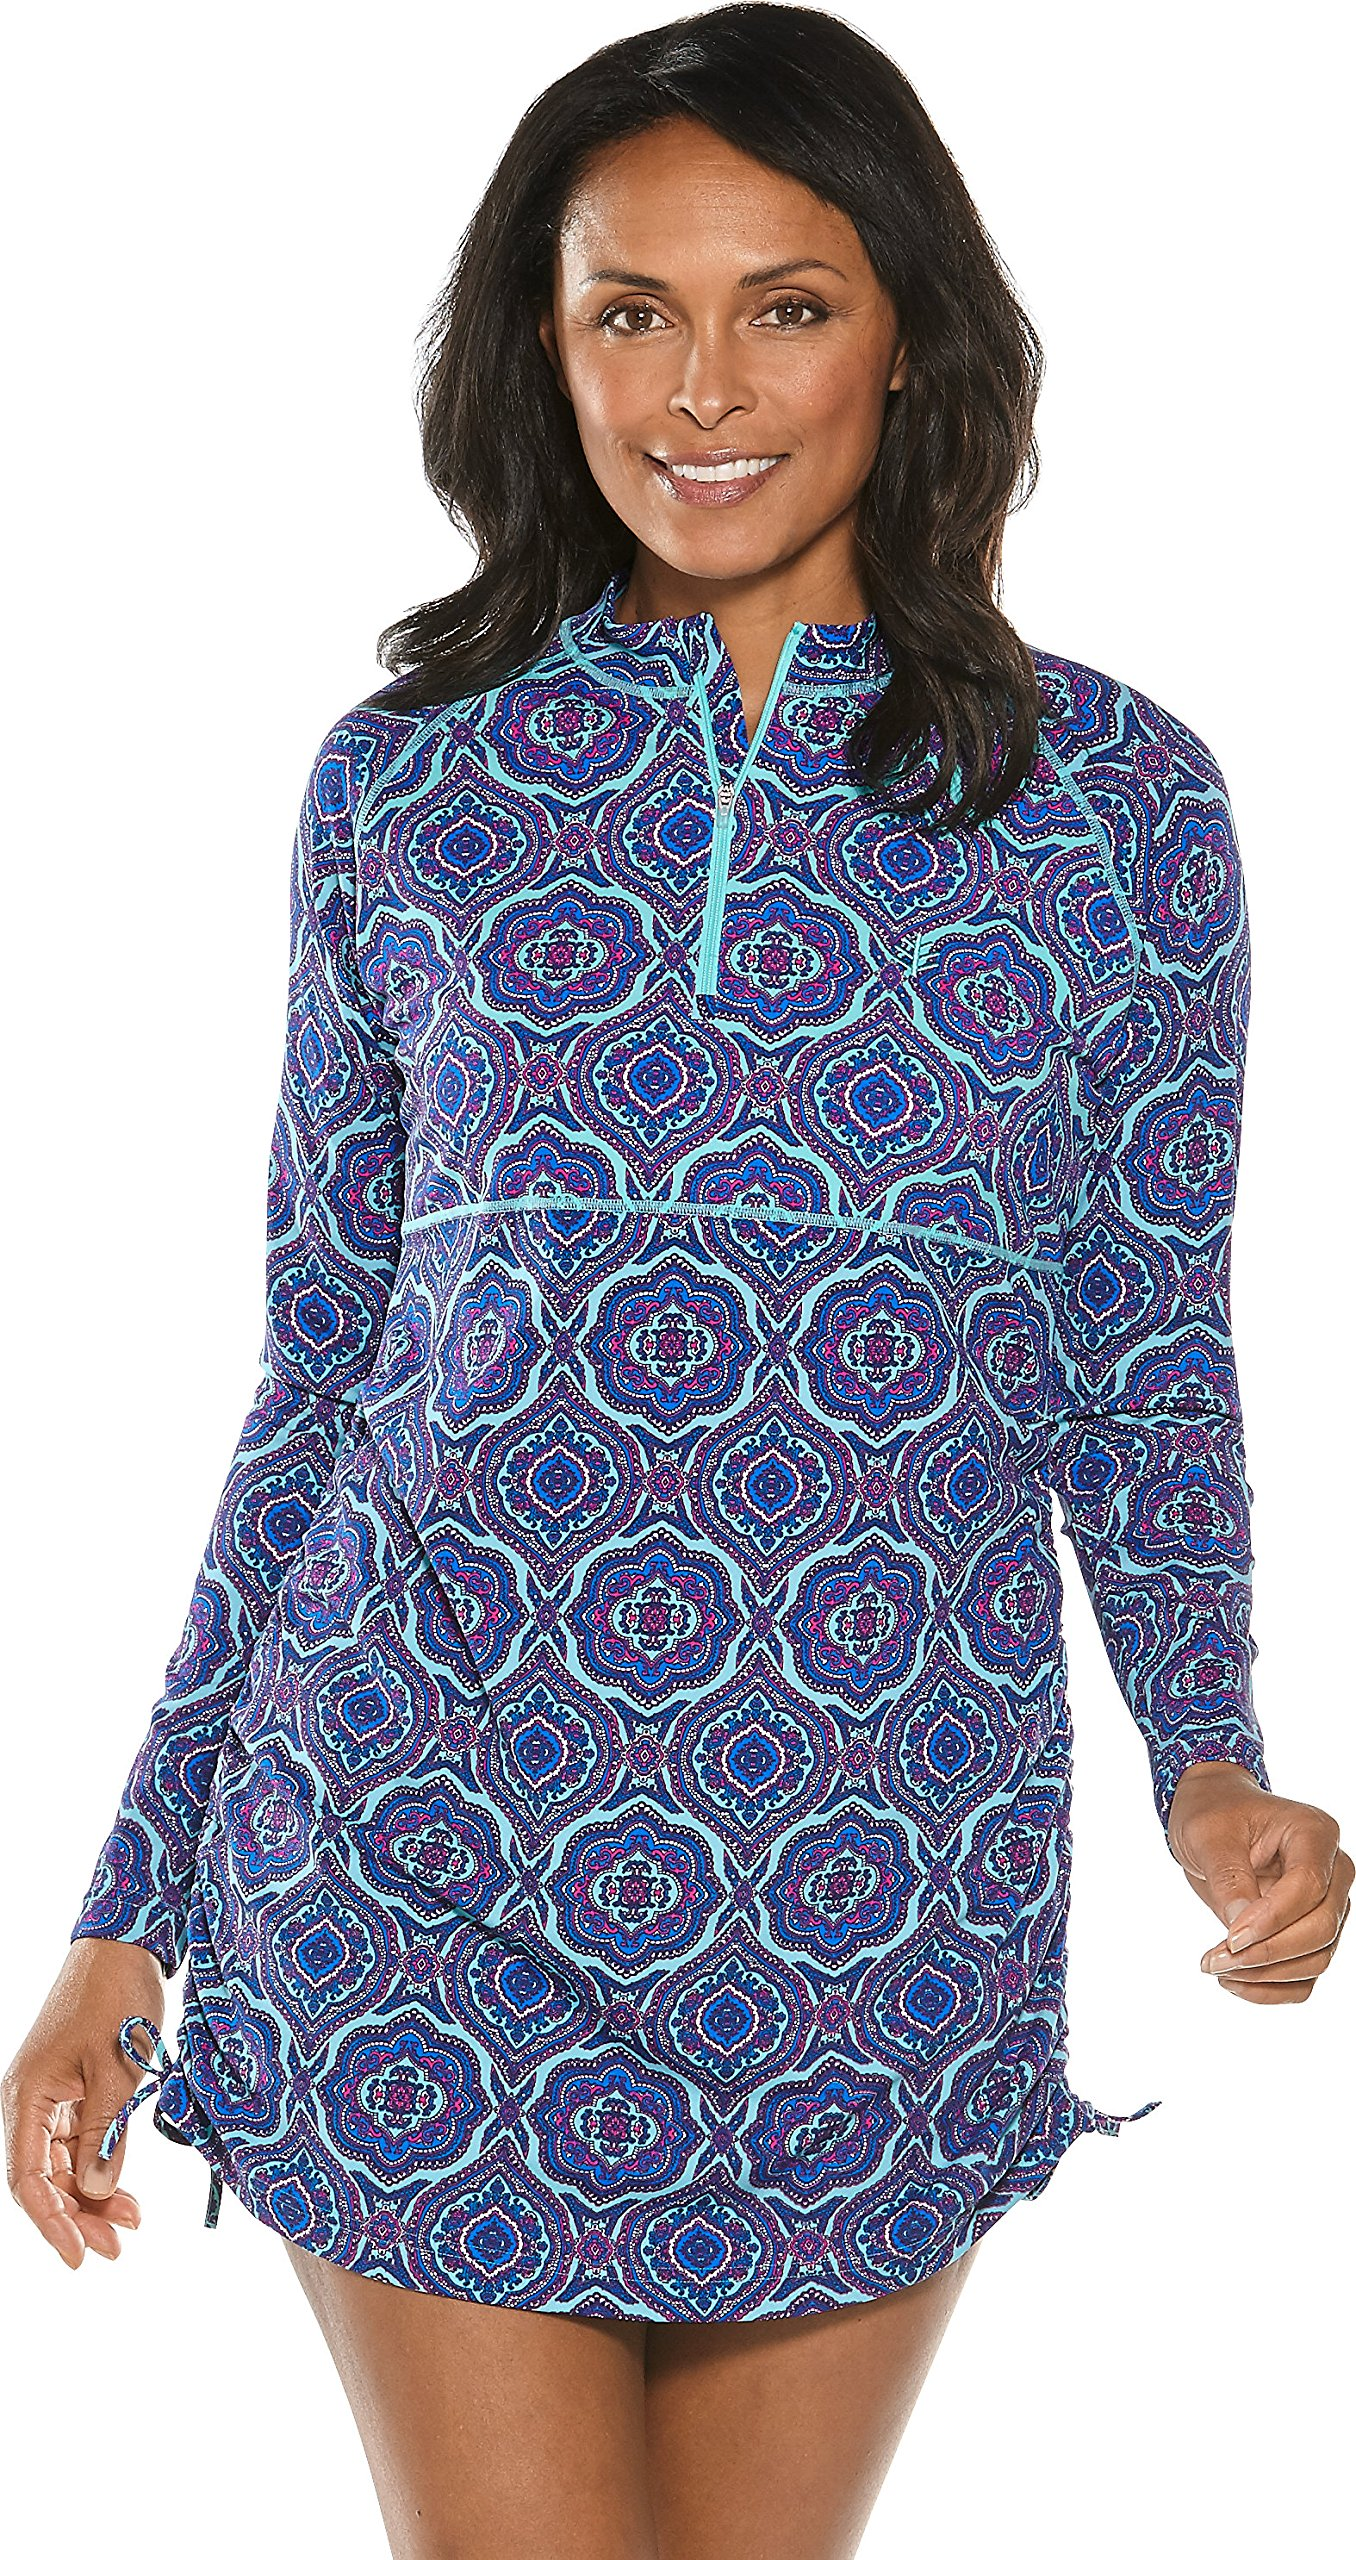 Coolibar UPF 50+ Women's Island Ruche Swim Shirt - Sun Protective (Medium- Tropical Mint Beach Medallion)